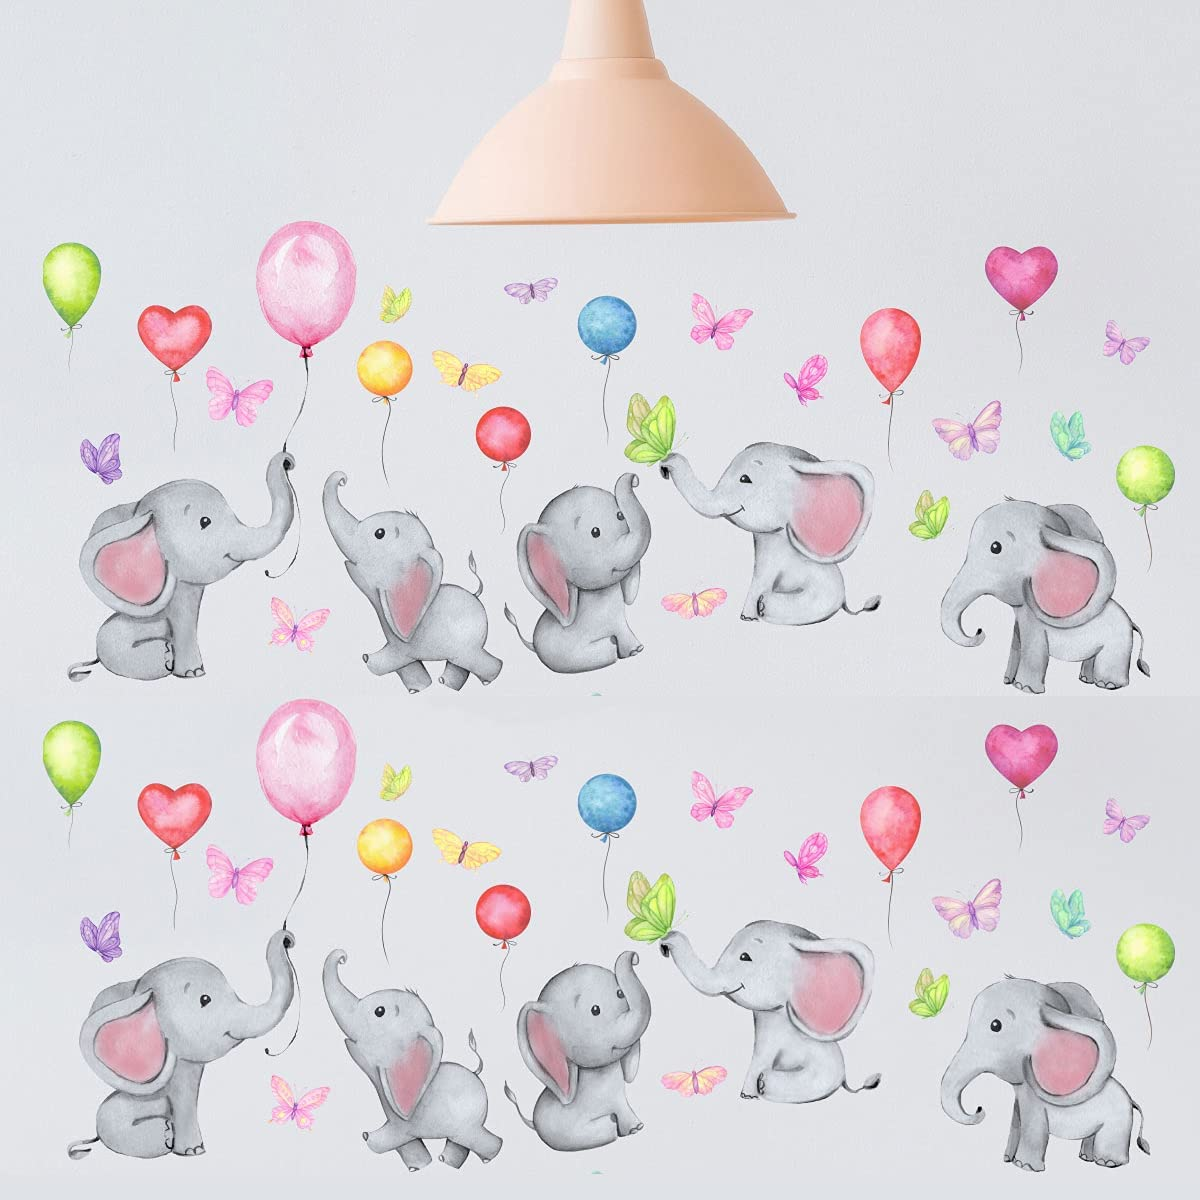 Wall Decor with Animal, Butterfly, Balloons, 8 Sheet Baby Elephant Nursery Decor, Wall Stickers for Kids, Bedroom Décor for Girls